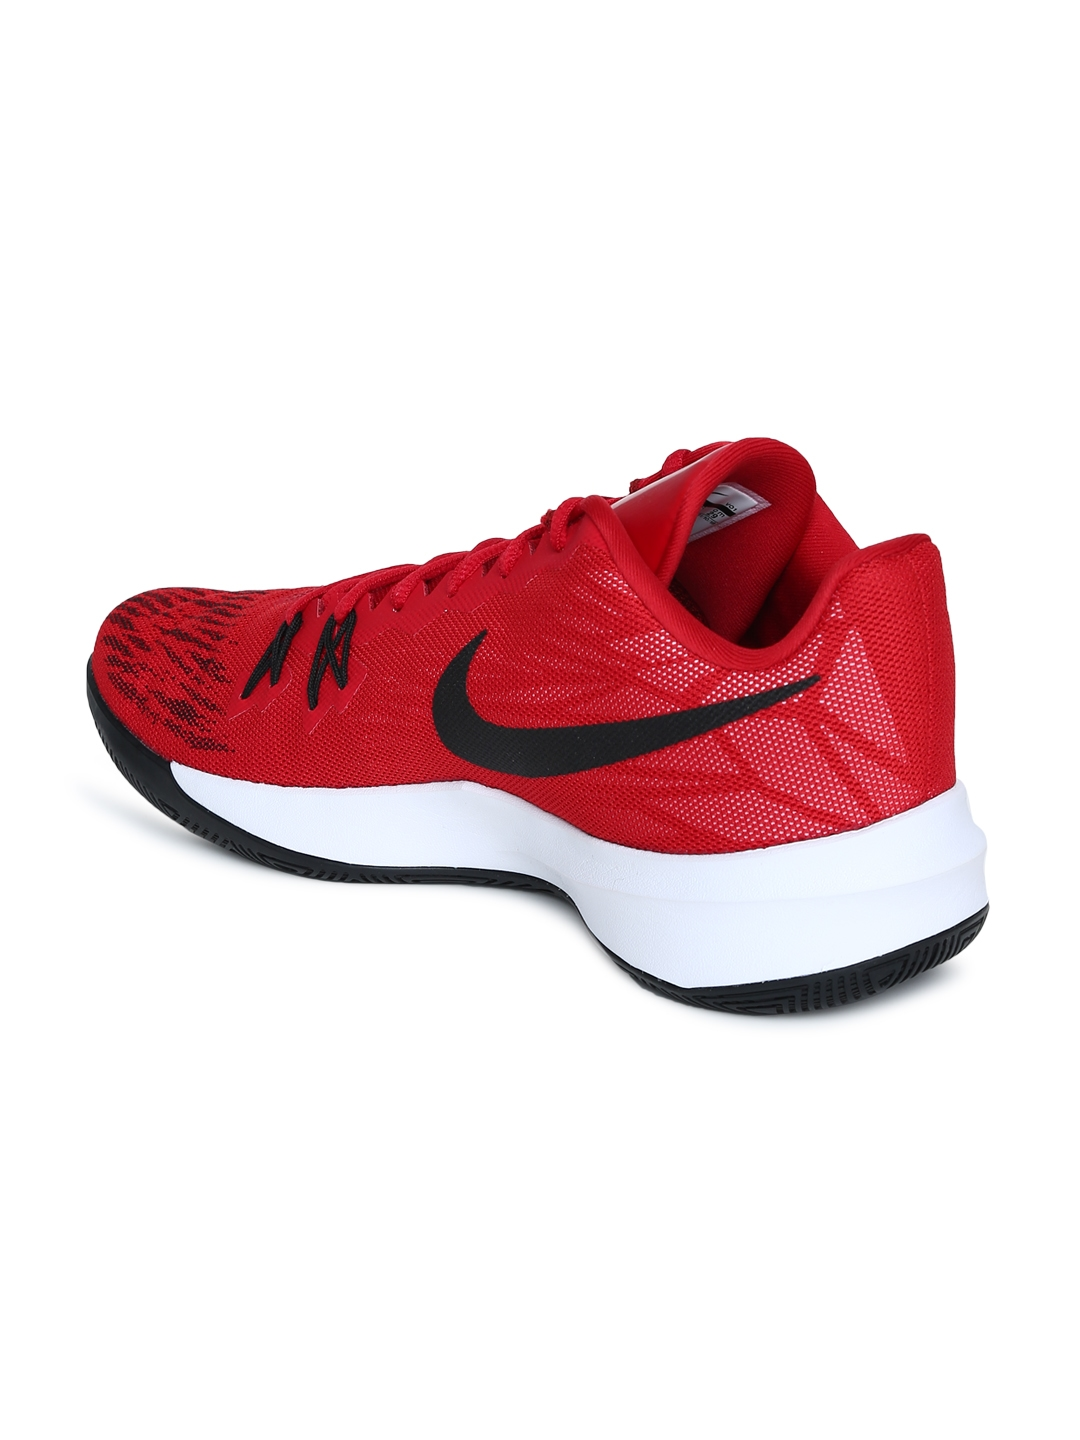 Buy Nike Men Red ZOOM EVIDENCE II Basketball Shoes - Sports Shoes ... 7103bf10015